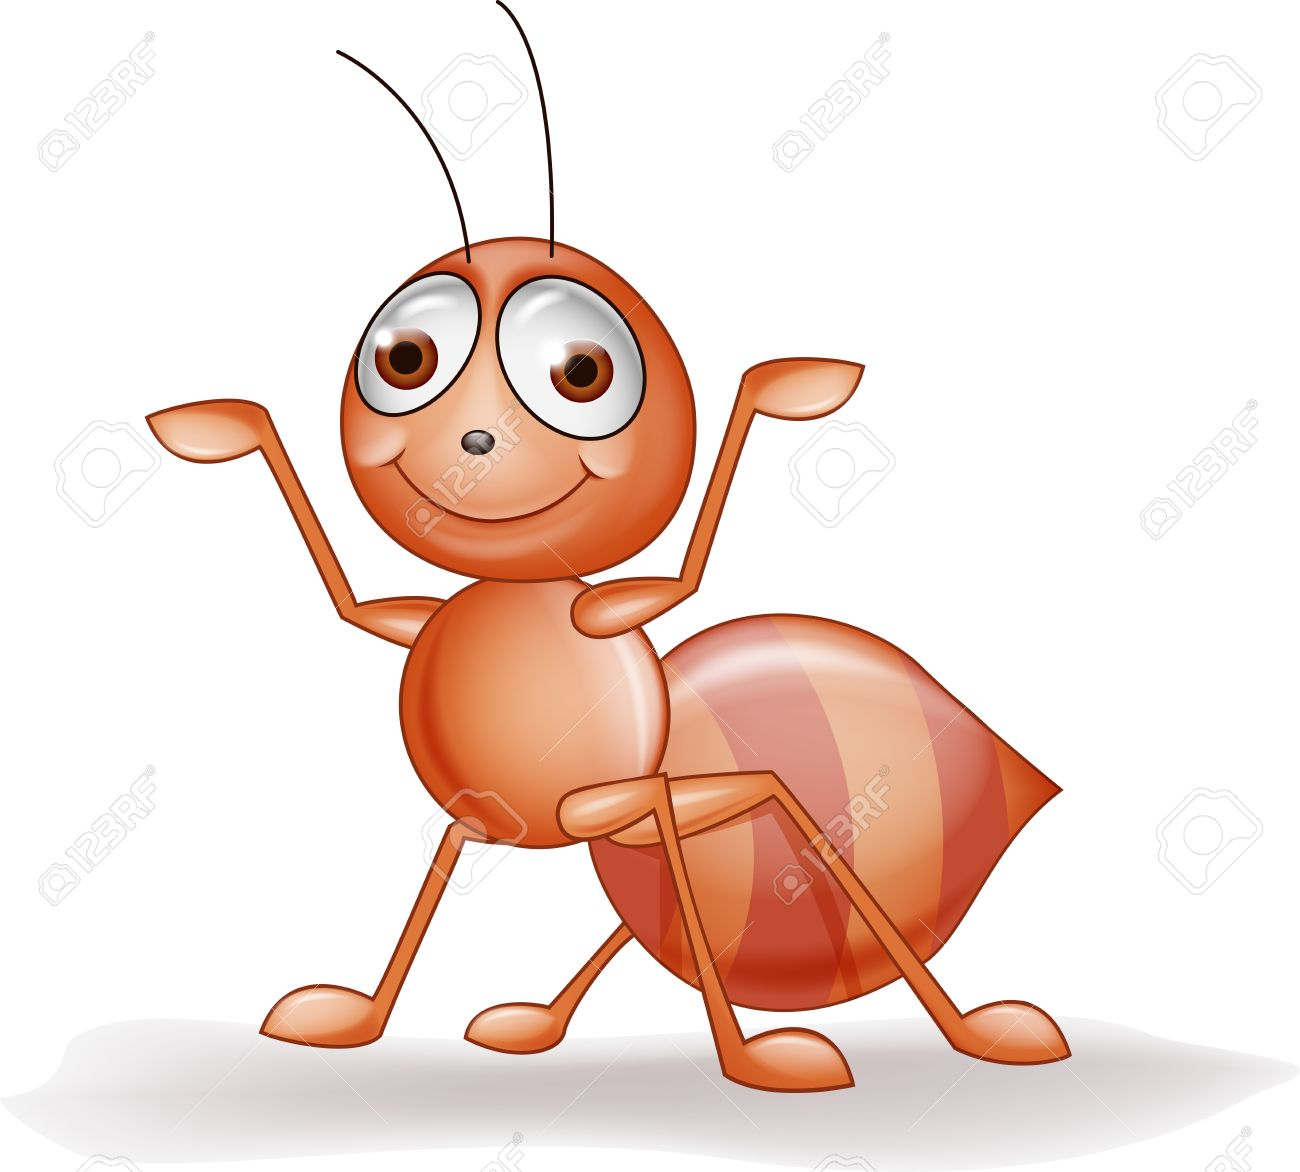 Ants clipart hard working Ant clipart 93 Clipart #65